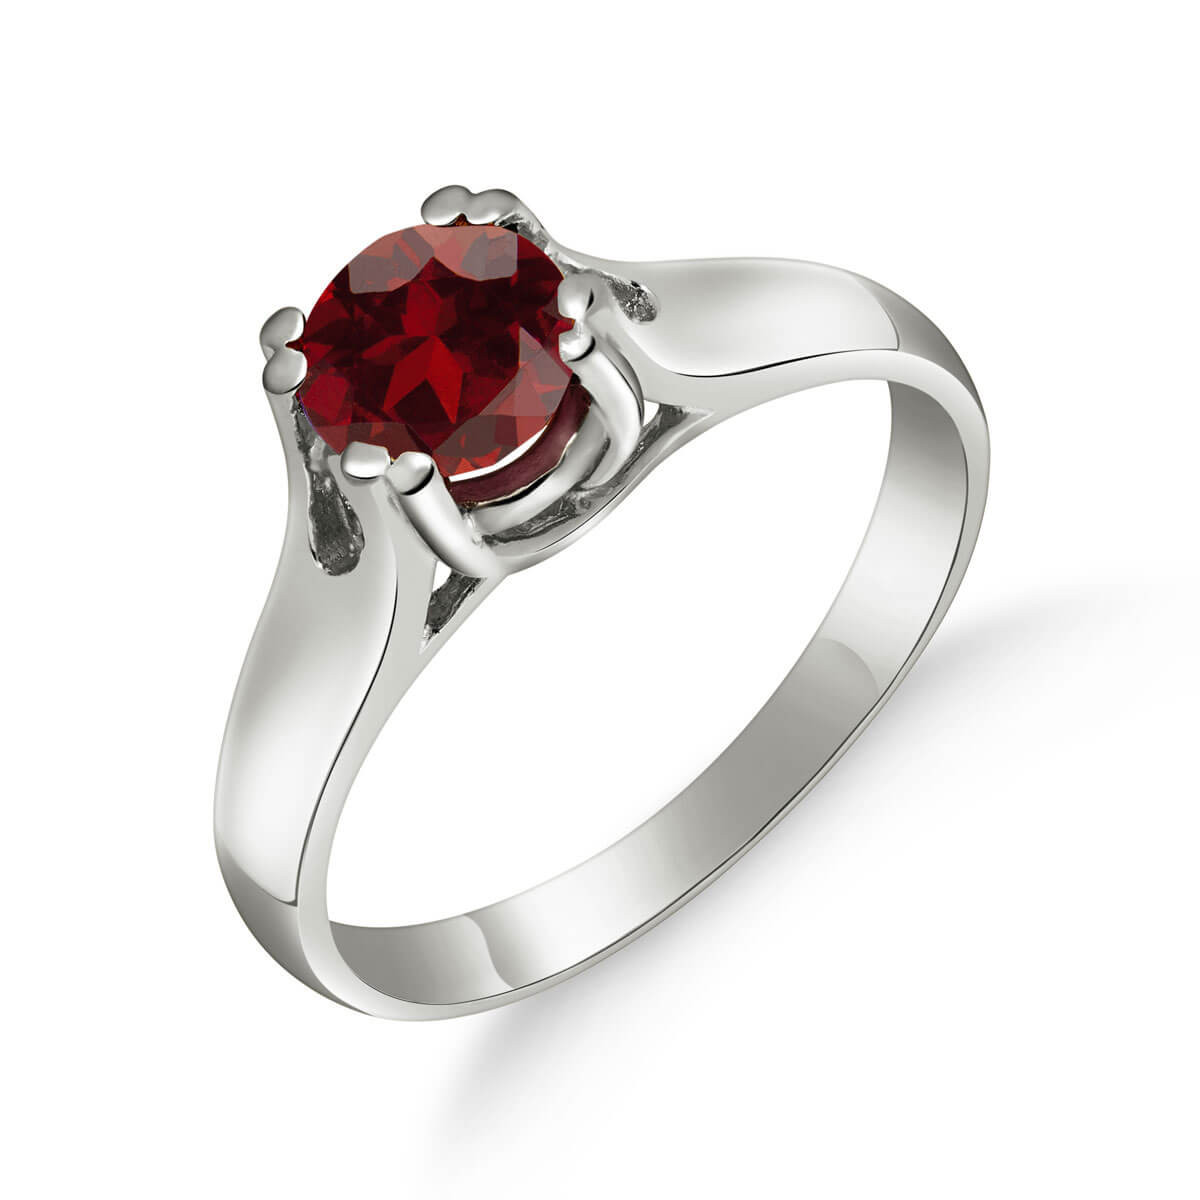 Garnet Solitaire Ring 1.1 ct in Sterling Silver